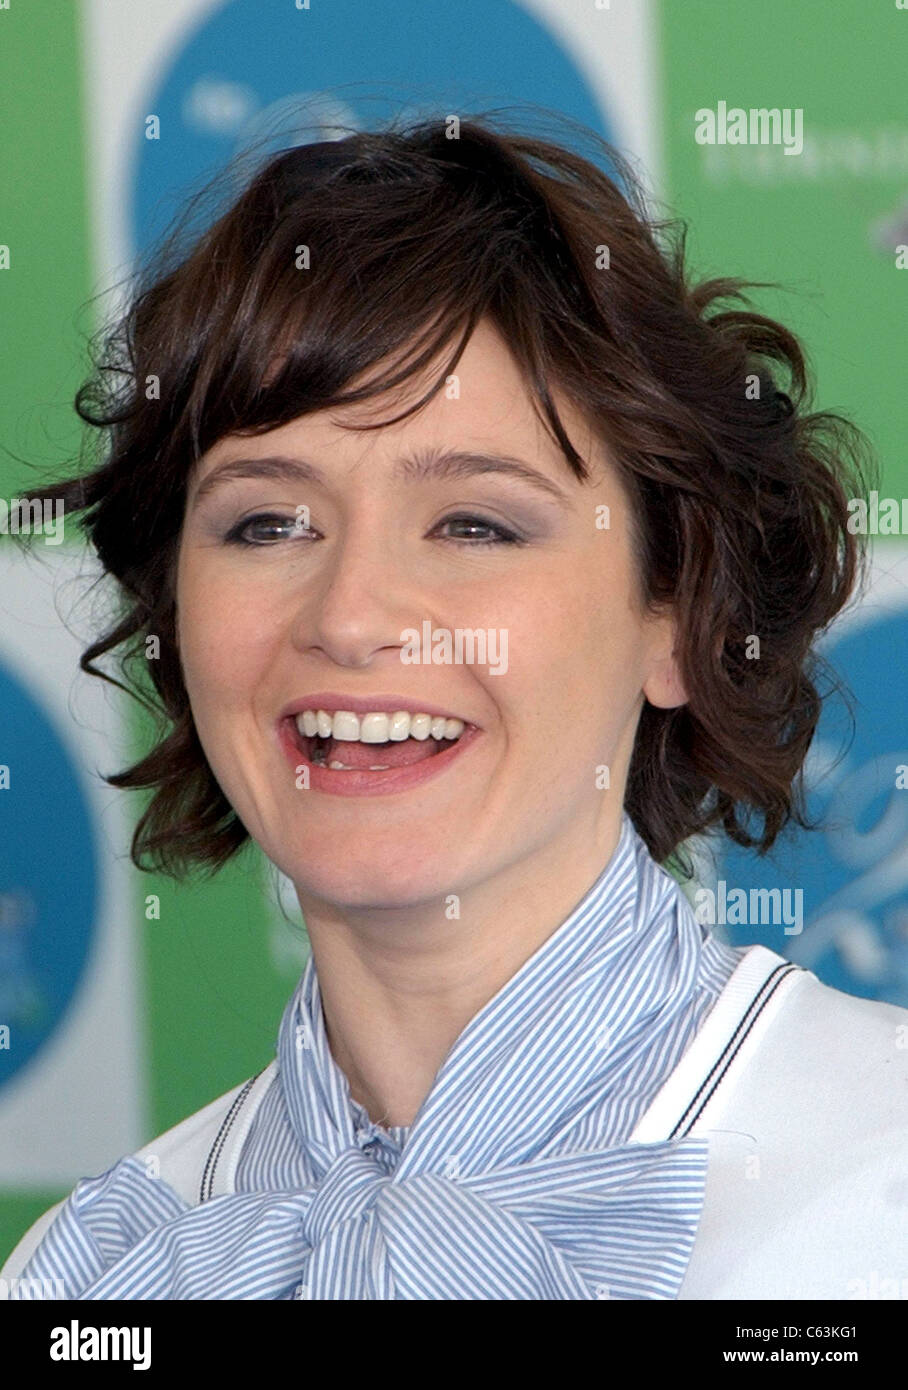 Emily Mortimer at arrivals for 20th IFP Independent Spirit Awards, Los Angeles, CA, Saturday, February 26, 2005. - Stock Image